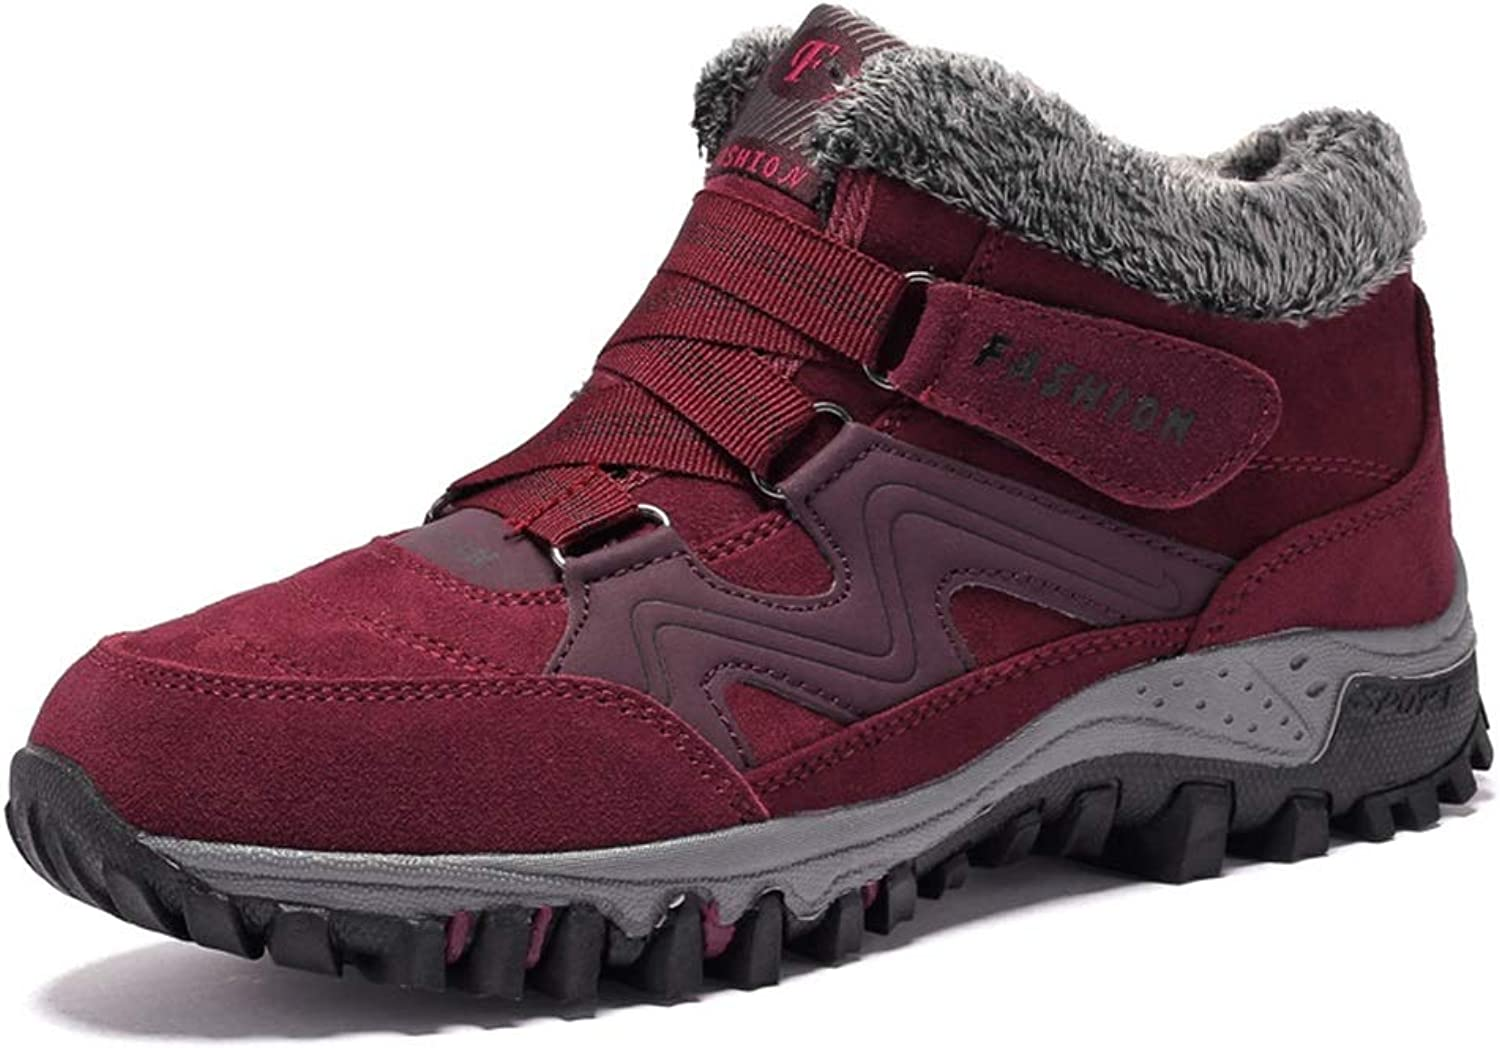 He-yanjing Women's Warm Hiking shoes, Winter Sports Warm Couple shoes Plus Velvet Outdoor Cotton shoes for Men and Women Hiking Wear-Resistant Non-Slip Warm Hiking shoes